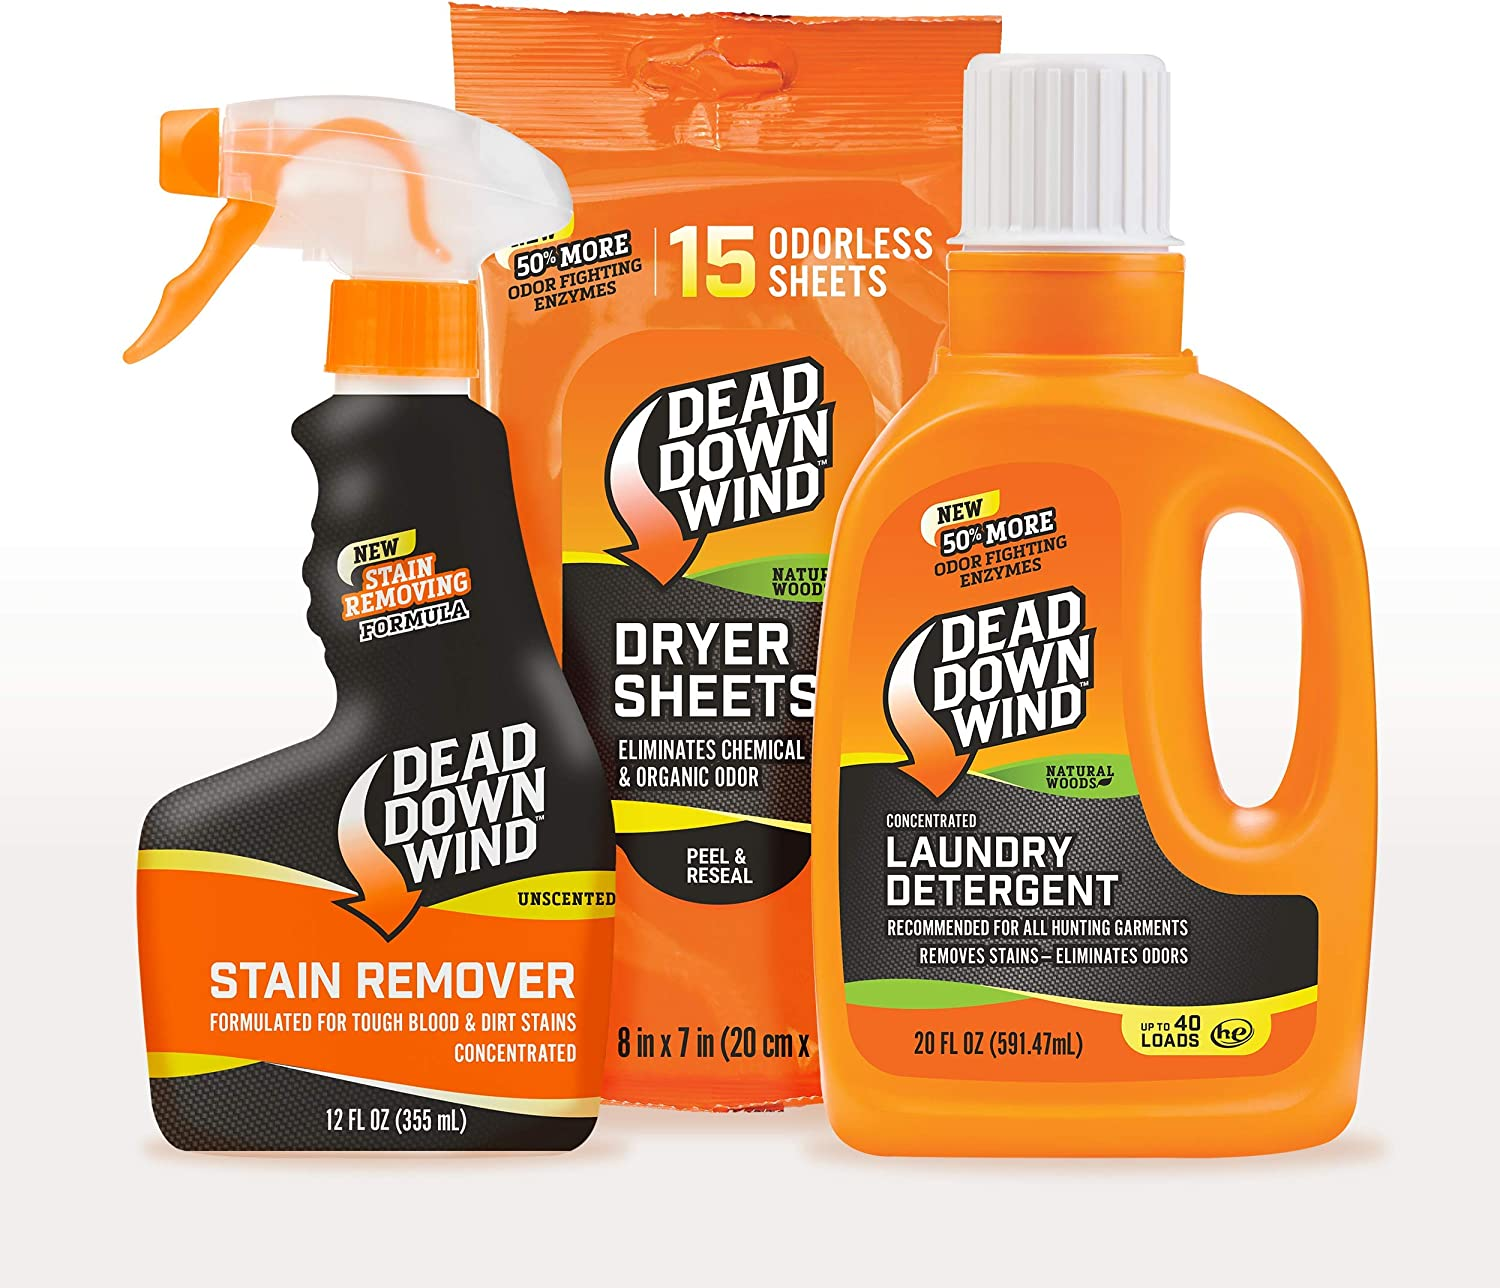 Dead Down Wind Natural Woods Laundry 3 Piece Kit – Stain Remover, Laundry Detergent and Dryer Sheets – Odor Elimination For Hunting Gear